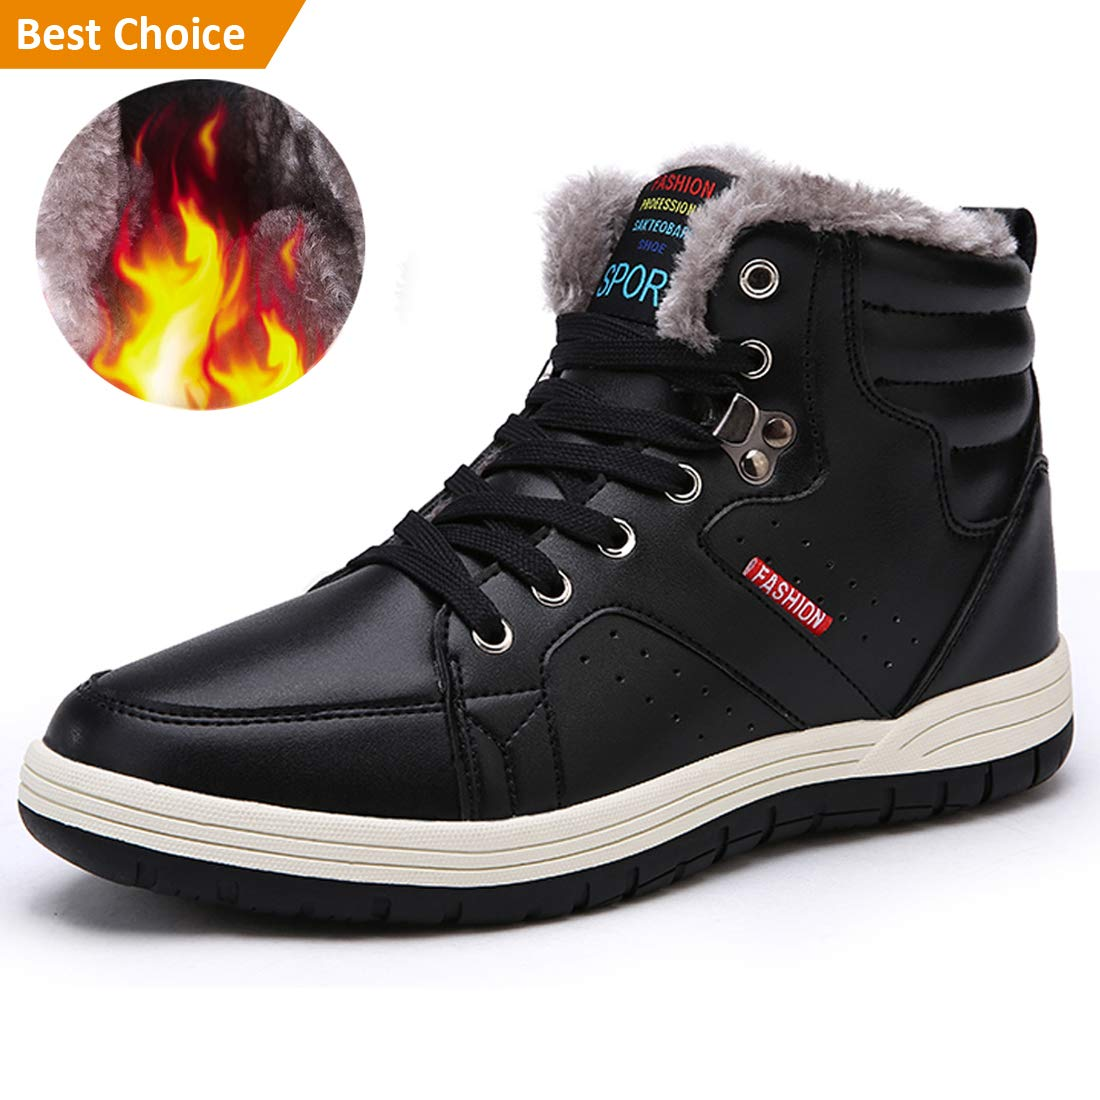 Ceyue Mens Leather Snow Boots Lace Up Ankle Sneakers High Top Winter Shoes with Fur Lining Boots081801